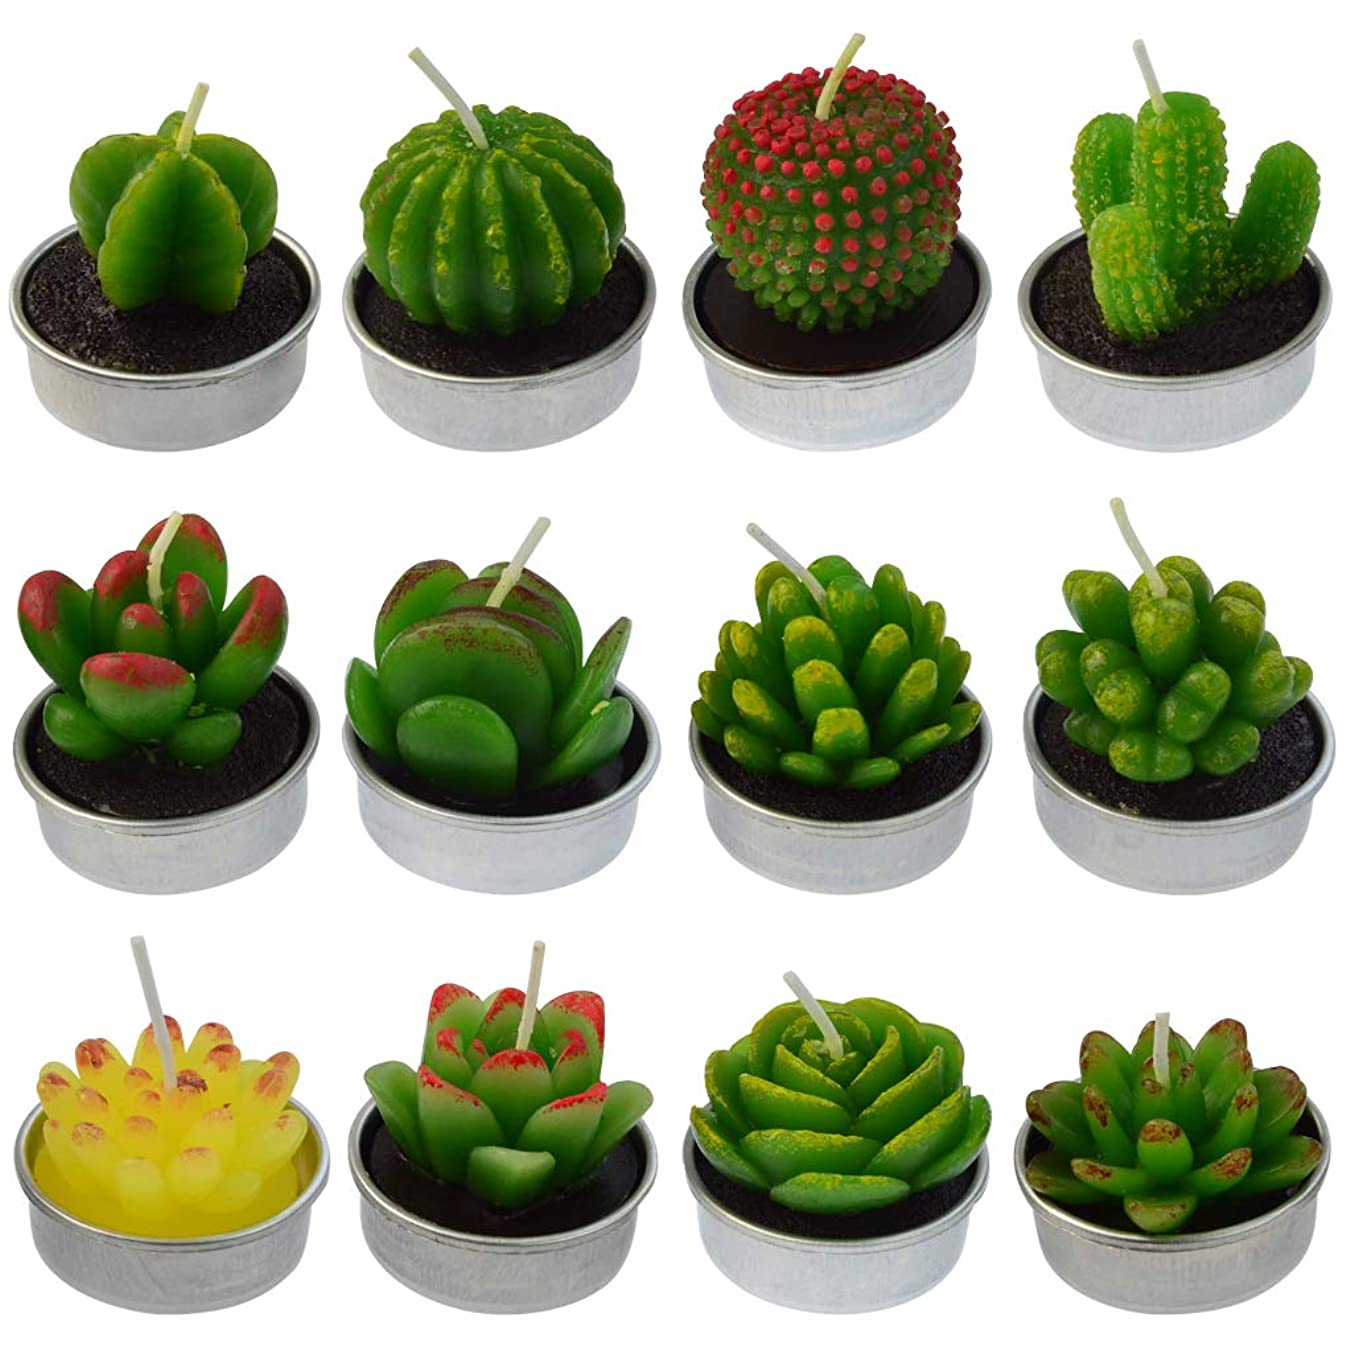 mifengda 12 PCS Cute Succulent Cactus Candles Smokeless Cactus Tealight Candles Delicate Decorative Candles Valentine's Day Birthday House-Warming Party Wedding Spa Home Decoration Gifts